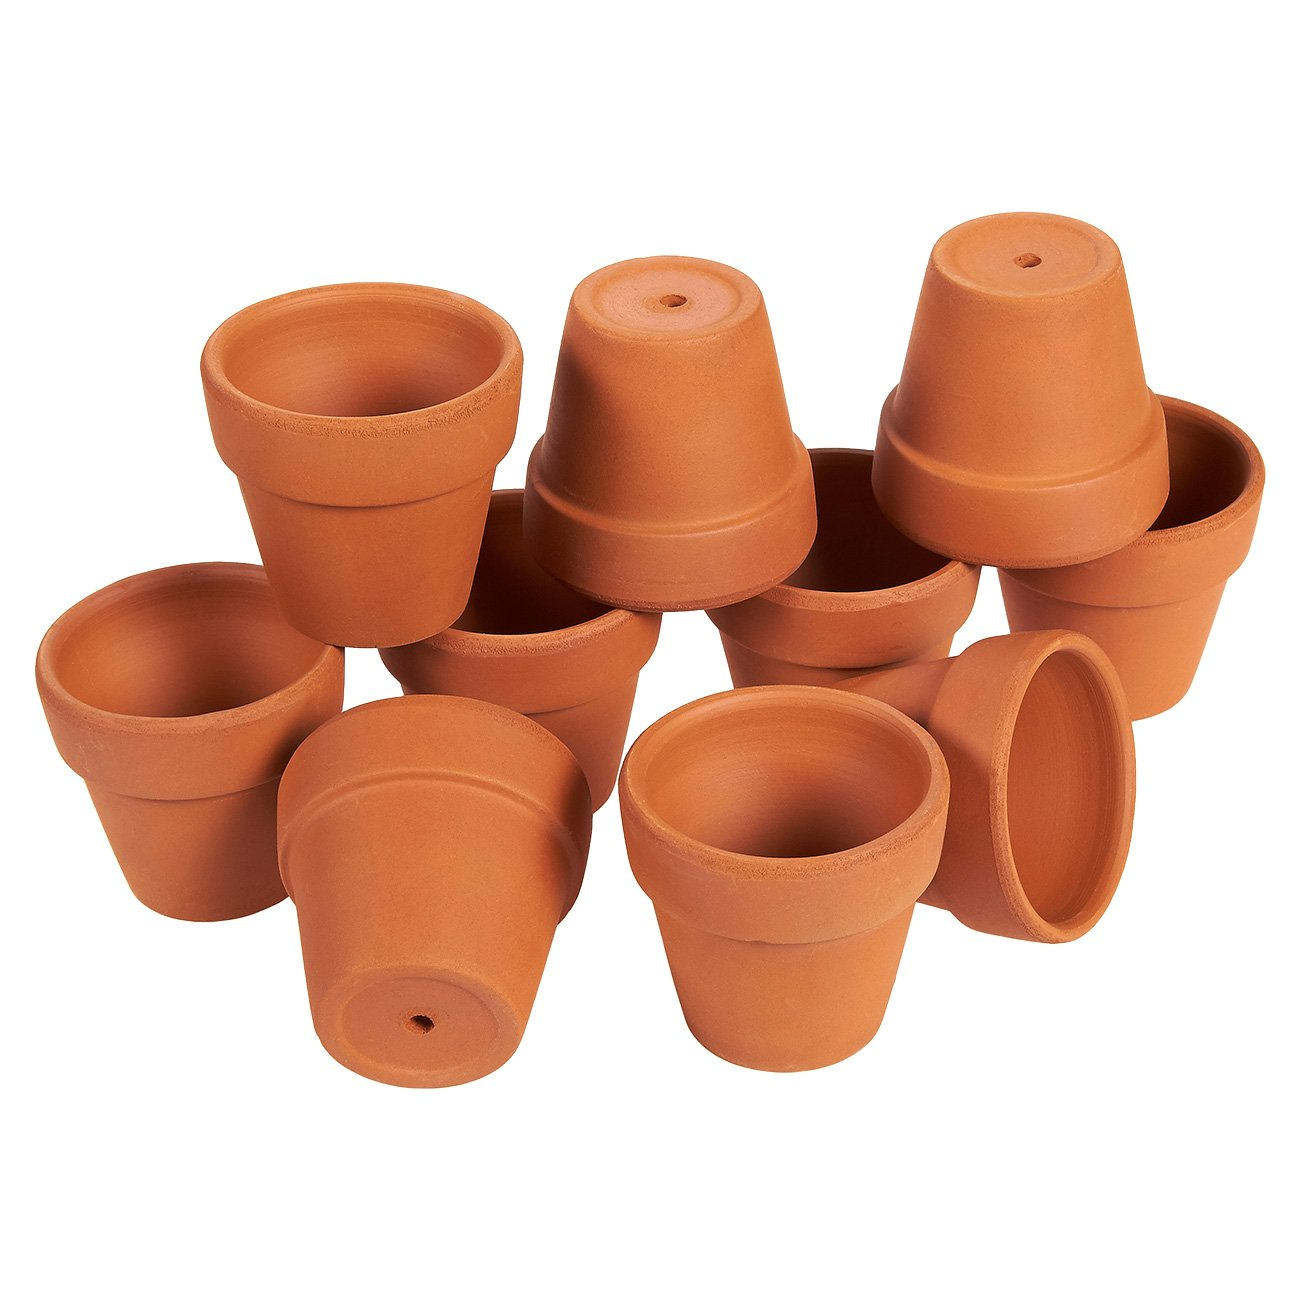 Terra Cotta Pots - 10-Set Clay Flower Pots, Mini Flower Pot Planters for Indoor, Outdoor Plant, Succulent Display, Brown - 1.6 x 2.5 Inches